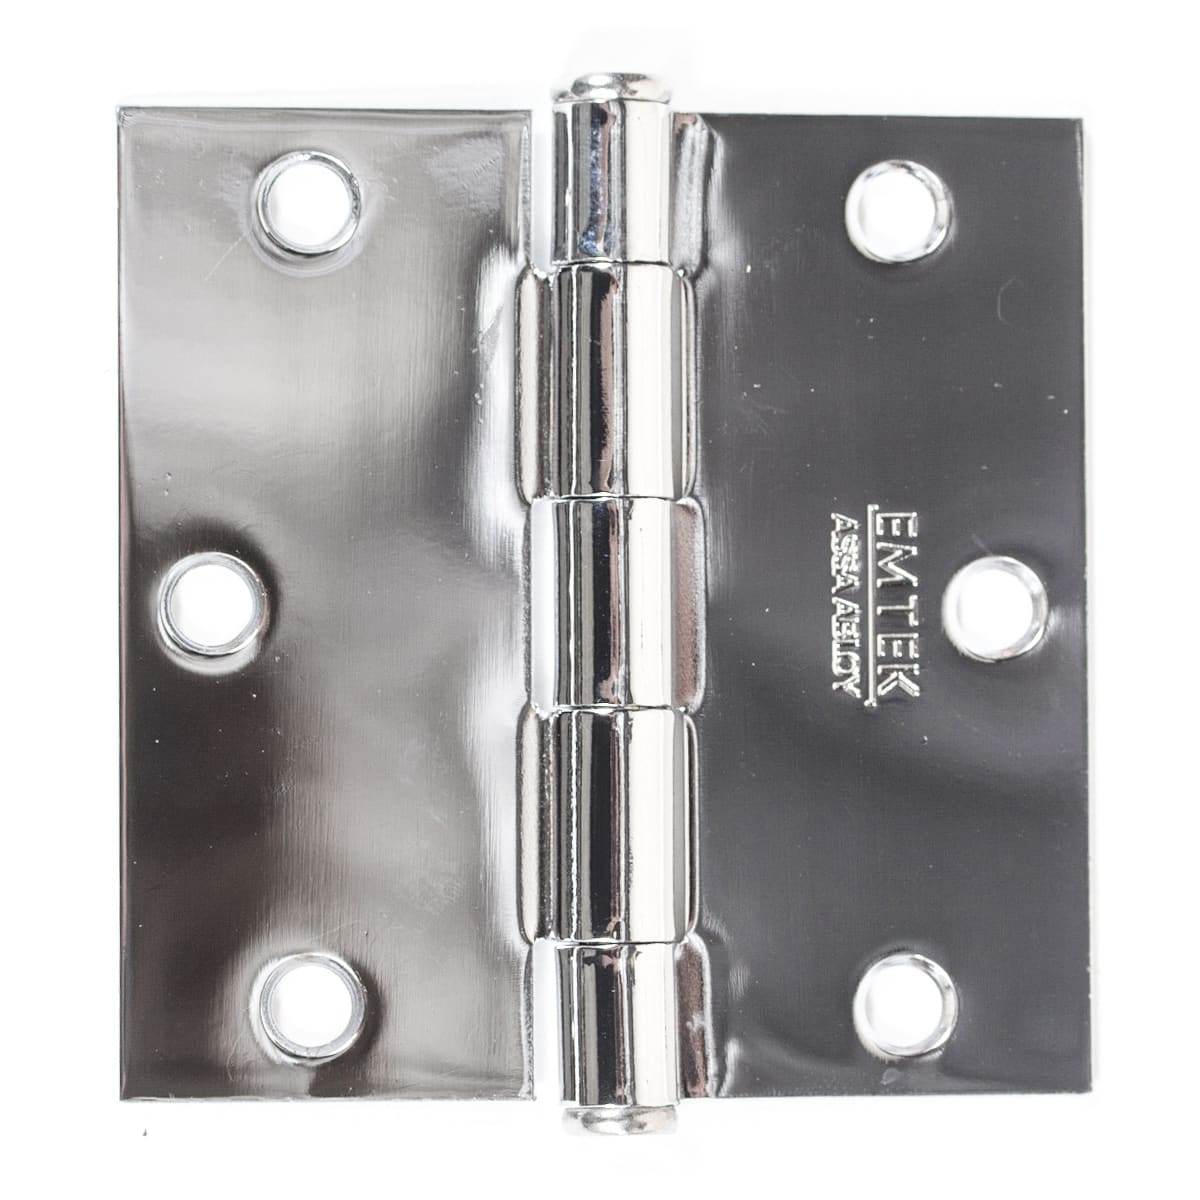 "Emtek 3.5"" x 3.5"" Square Corner Plain Bearing Mortise Hinge - Pair"